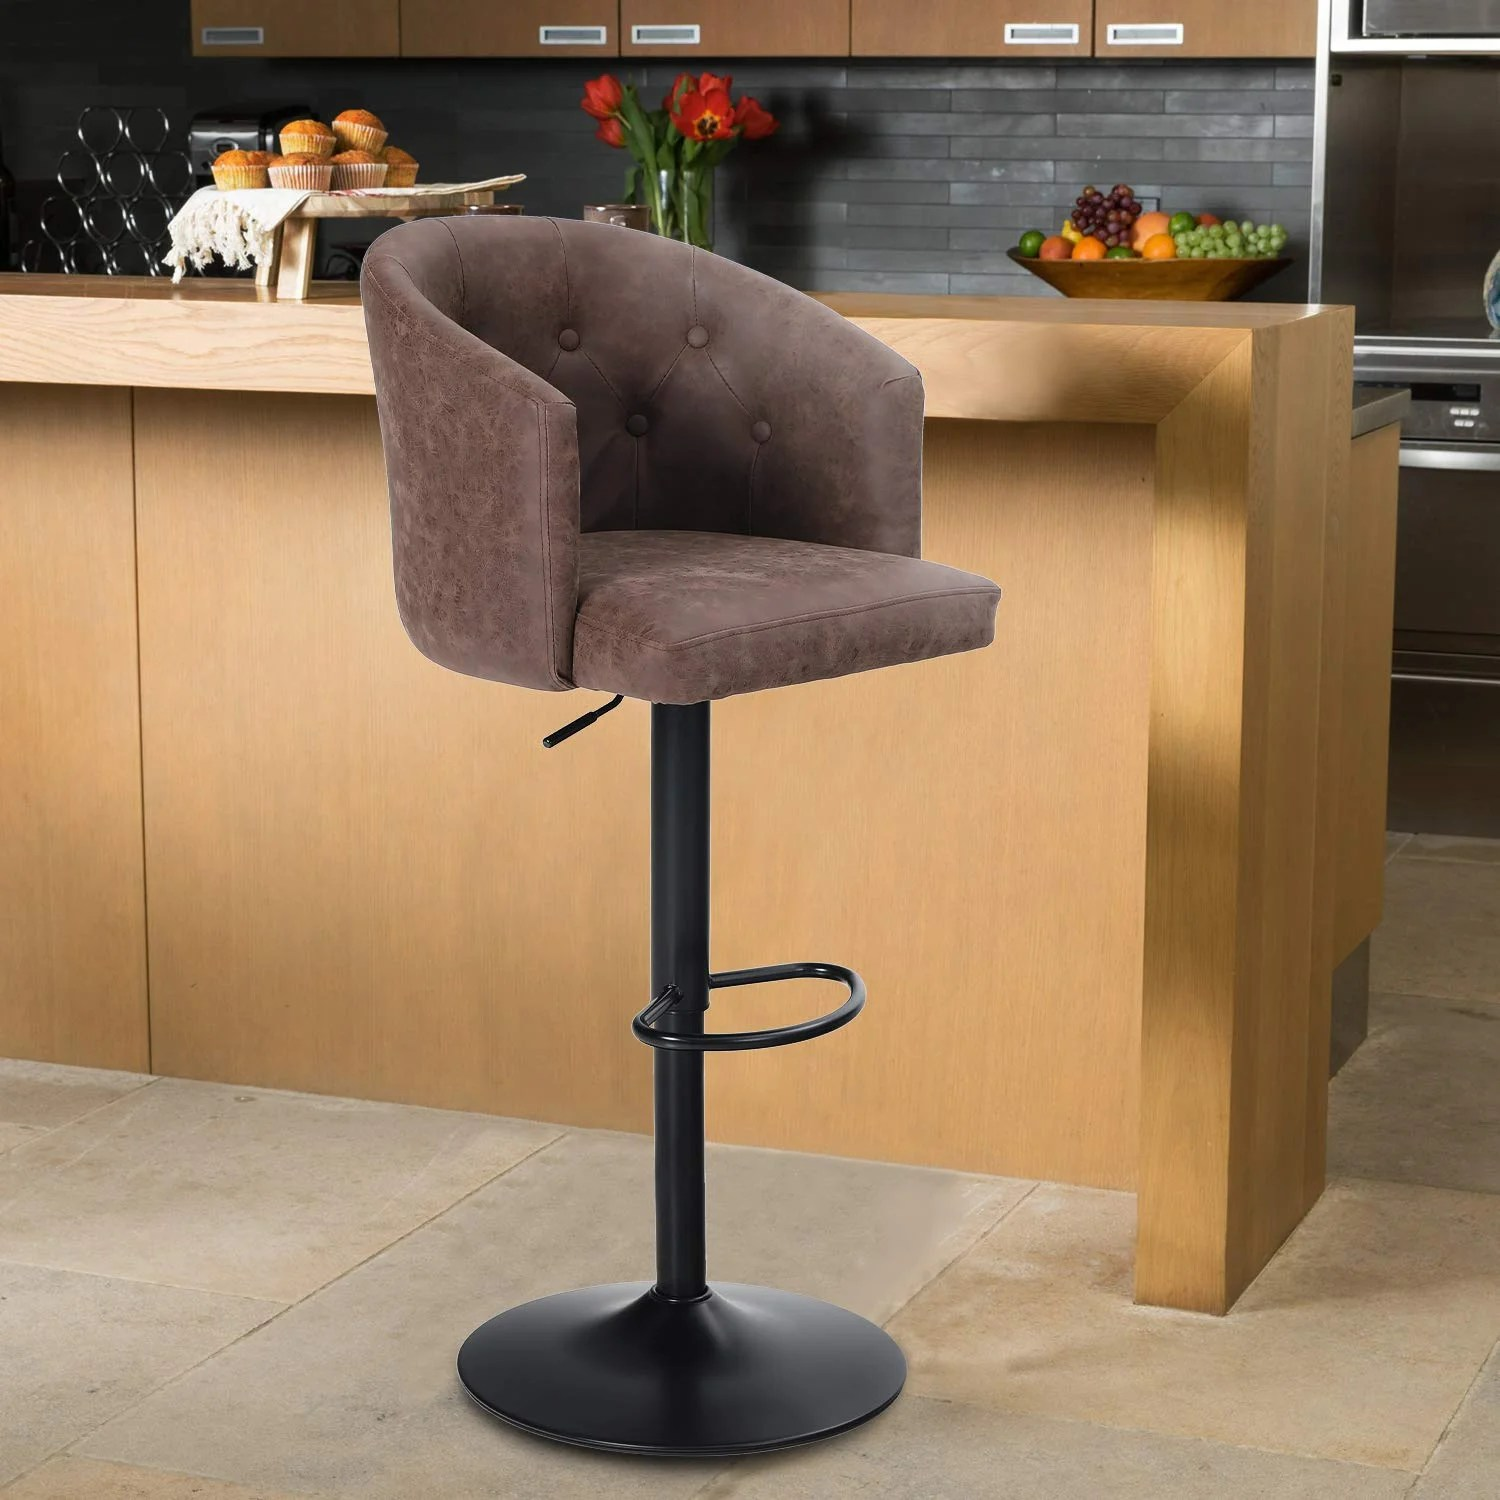 17 Stories Height Bar Stool Height Adjustable Barstool For Kitchen Counter Swivel Bar Chair With Rounded Mid Back For Kitchen Island Brown 1 Stool Wayfair